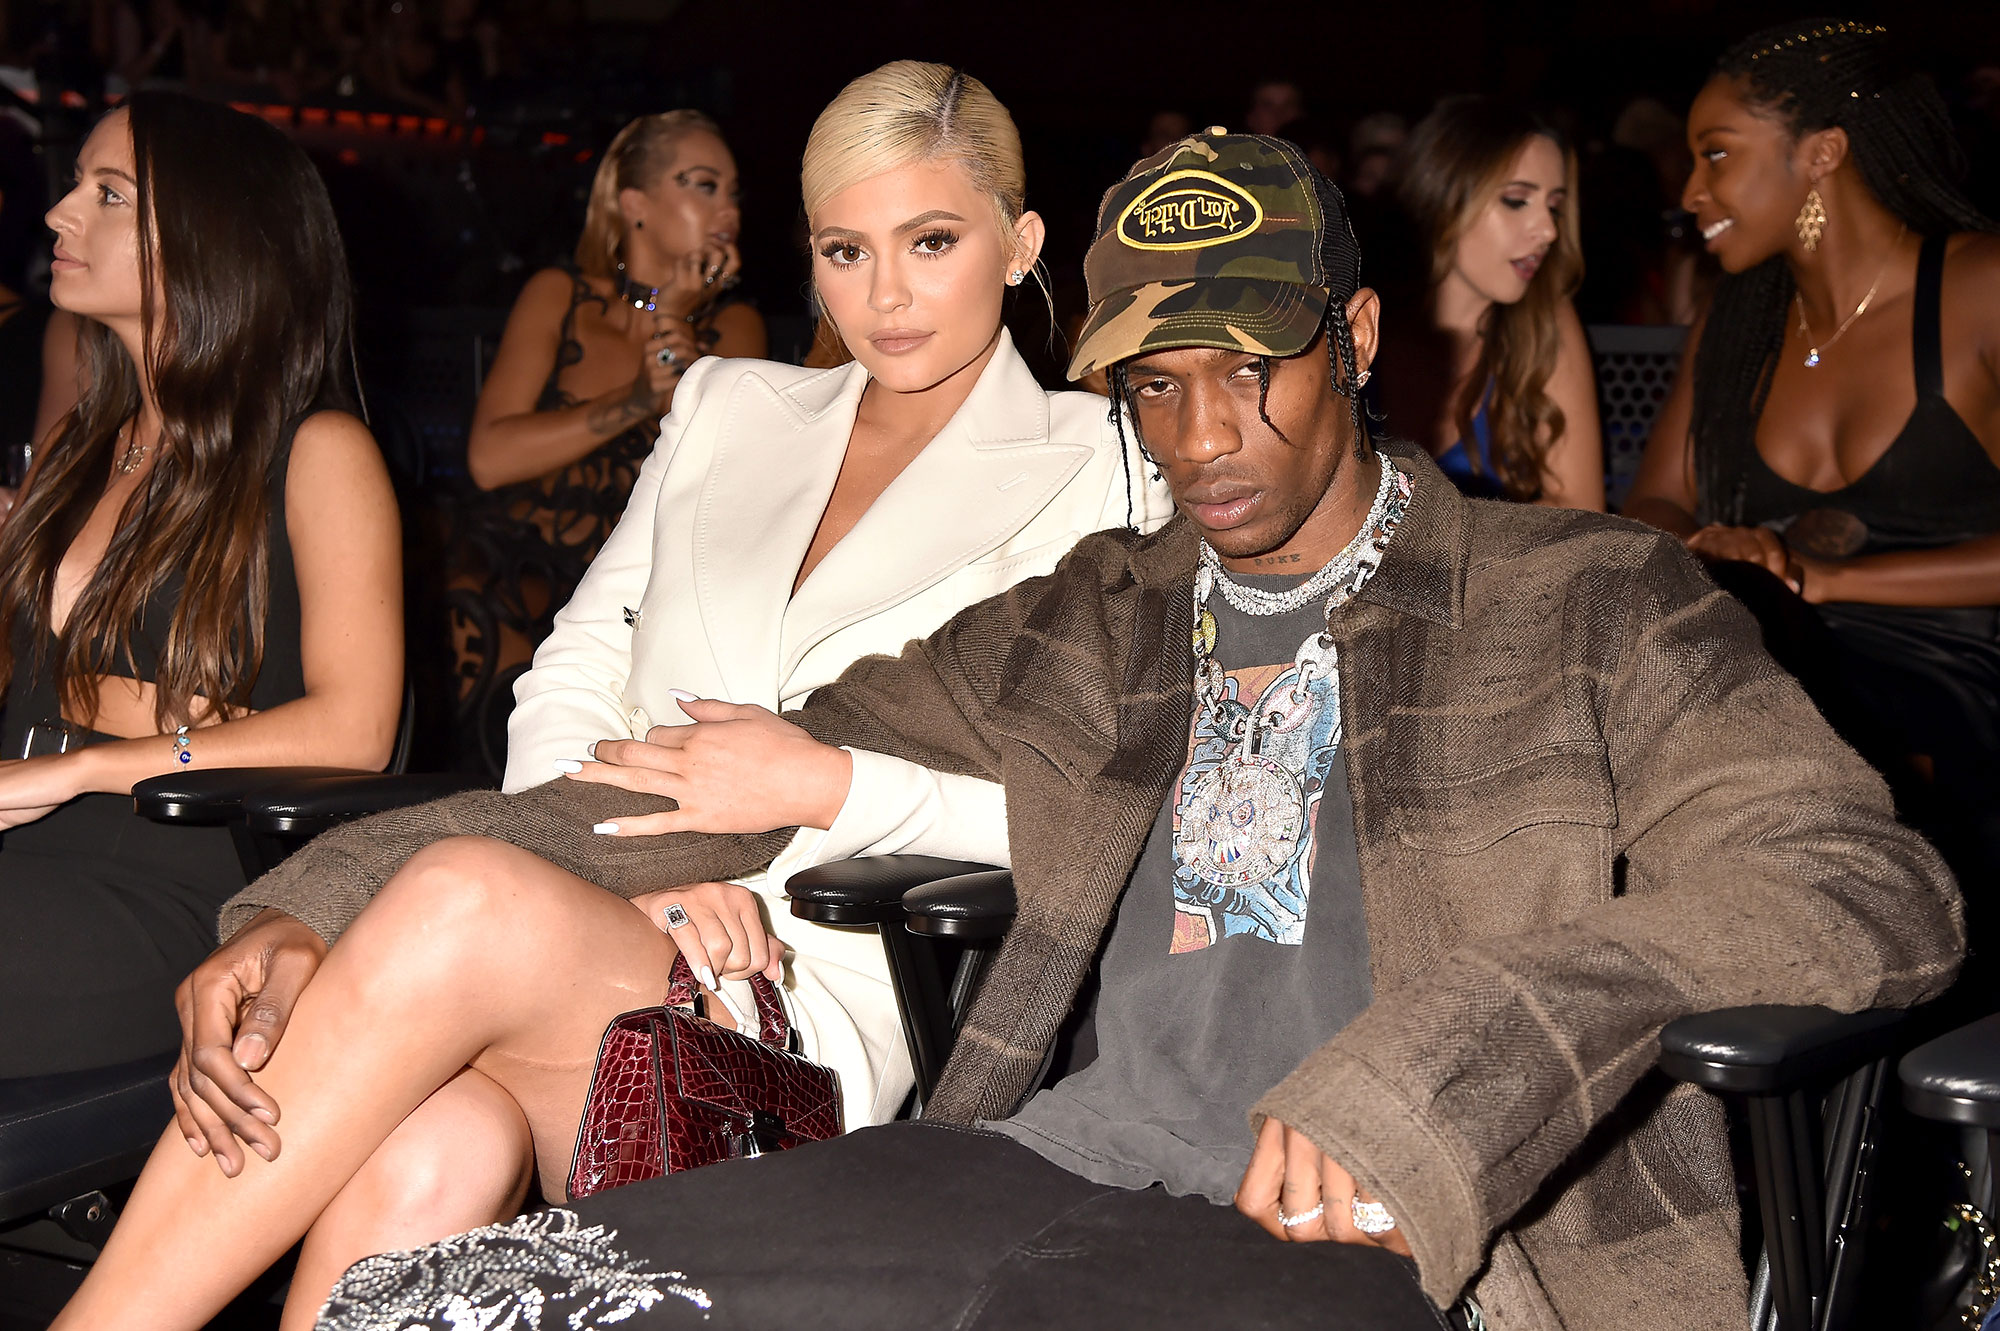 """Kylie and Travis Sweetest Quotes - The """"STARGAZING"""" crooner commented on an Instagram photo of Jenner in a white off-the-shoulder dress with thigh-high cowboy boots. """"Meal not a snack,"""" he wrote."""